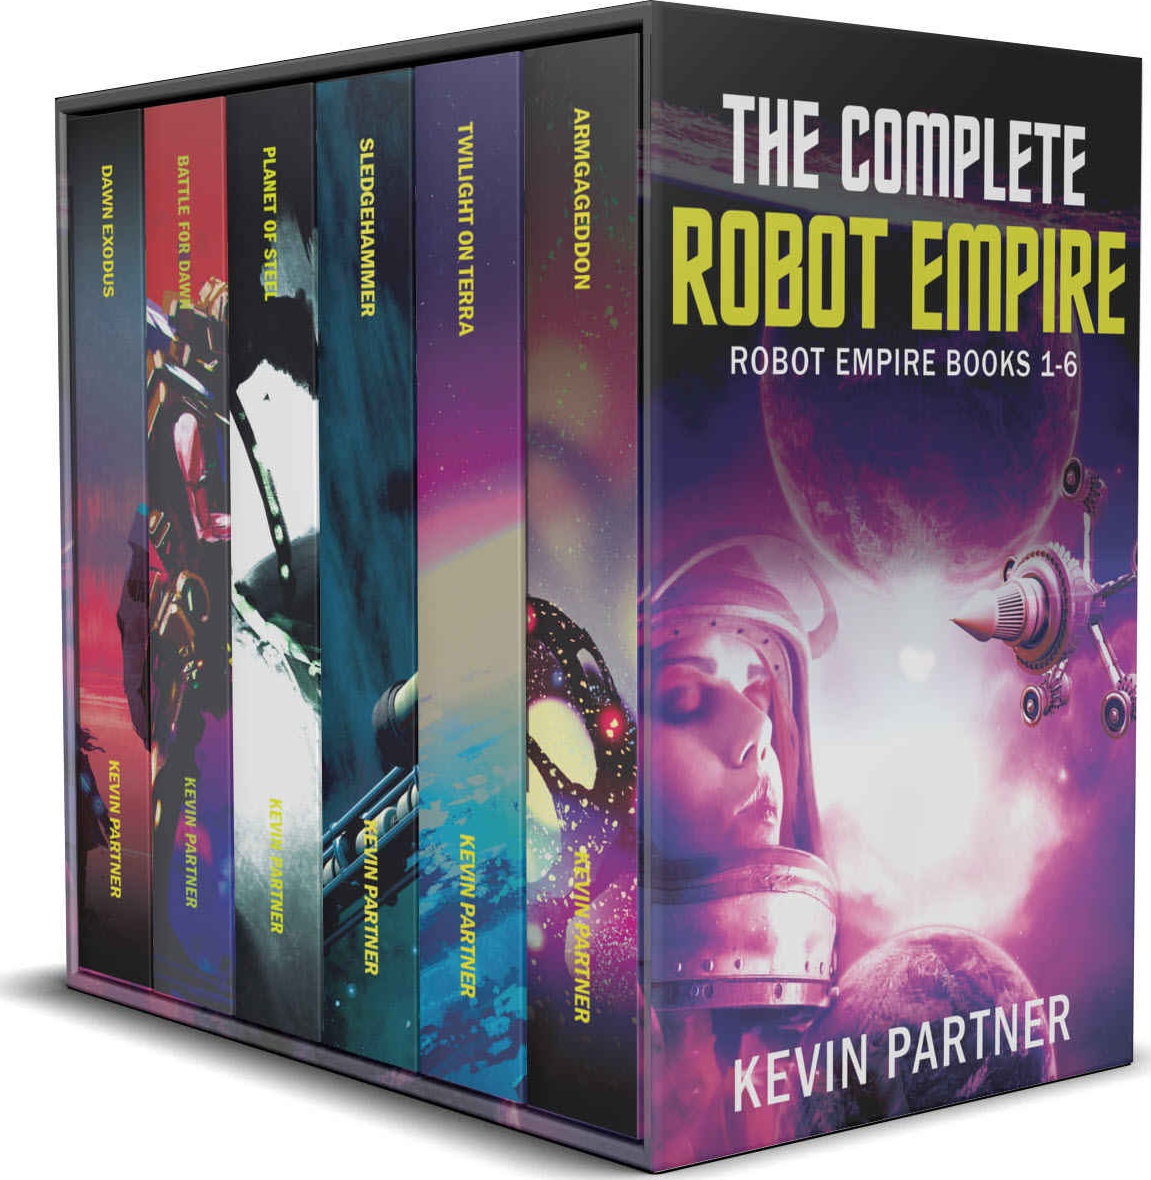 The Complete Robot Empire: A Galactic Space Opera Adventure in the Classic Tradition